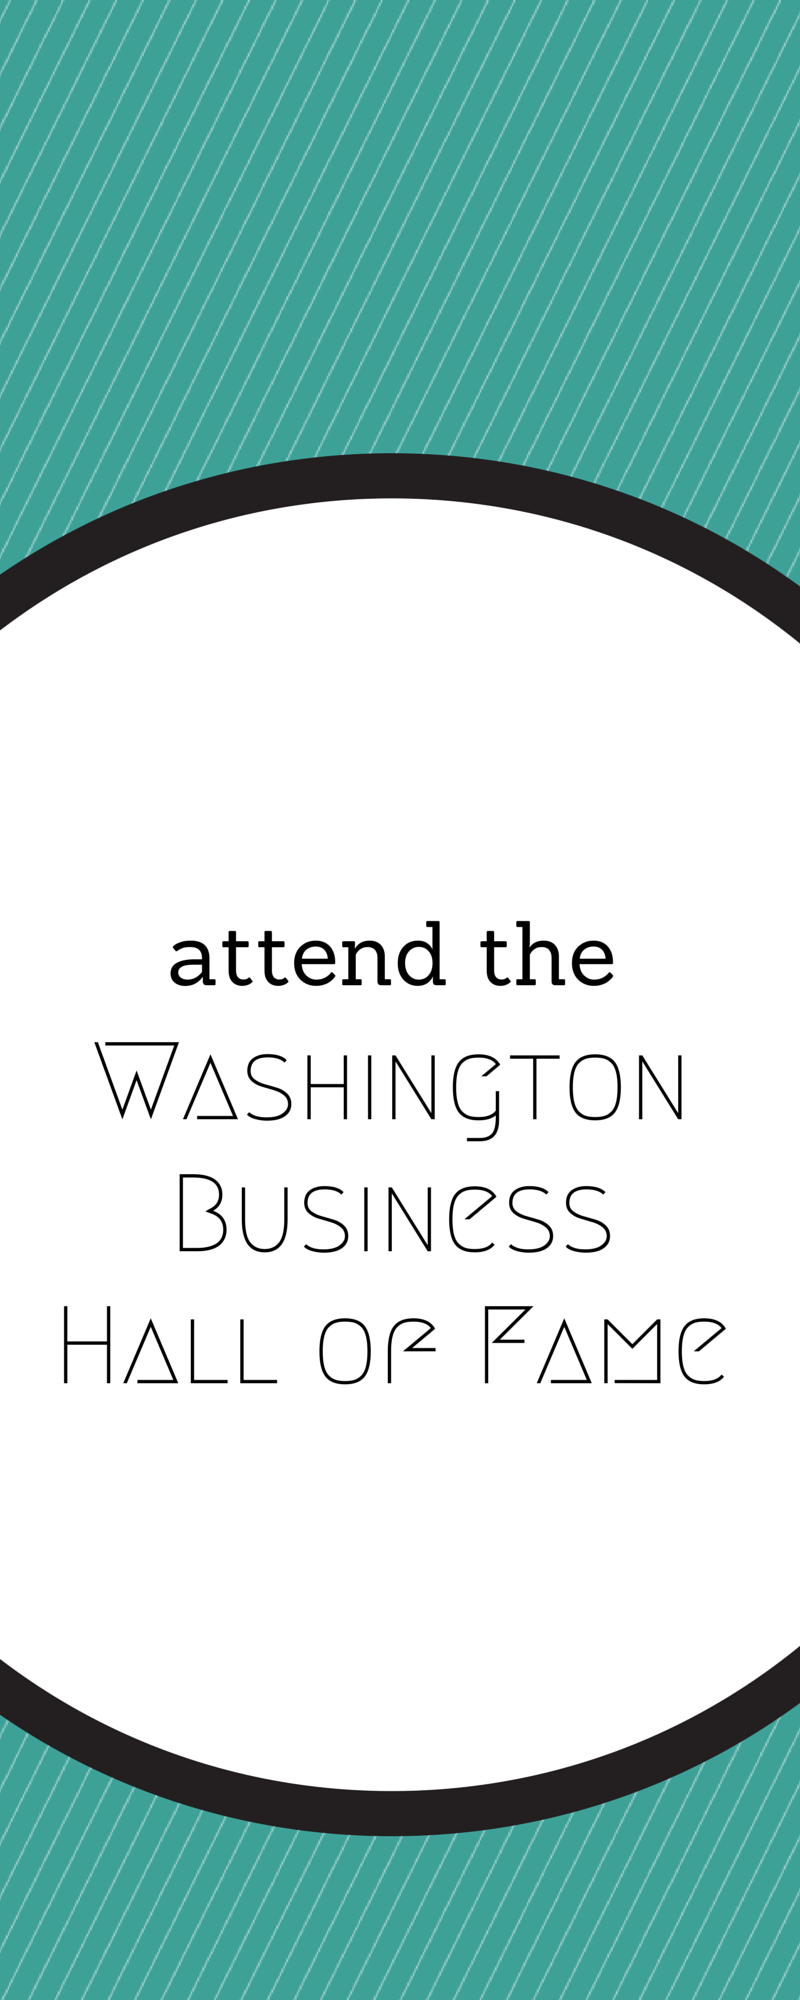 "The Washington Business Hall of Fame, once called the ""Academy Awards of Business"" by The Washington Post was founded in 1988 by Junior Achievement, Greater Washington Board of Trade, and Washingtonian. It honors Washington's best-in-business to benefit our region's next-in-business. Several sponsorship opportunities are available."